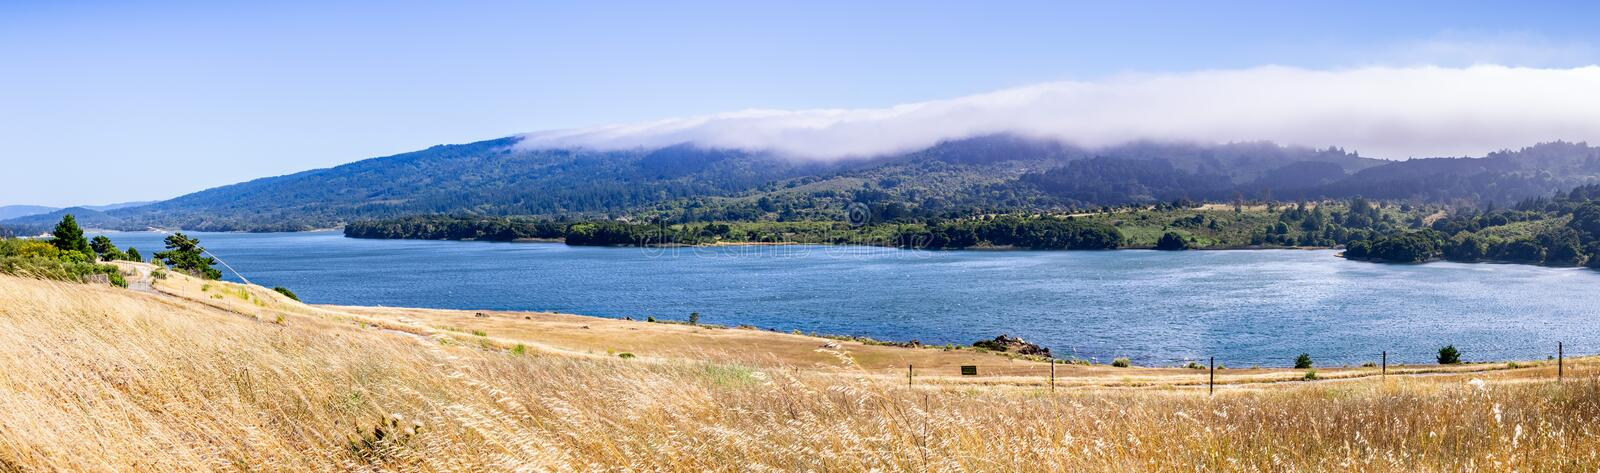 Upper Crystal Springs Reservoir,  part of the San Mateo Creek watershed and Santa Cruz mountains covered with clouds visible in. The background; San Mateo, San royalty free stock image